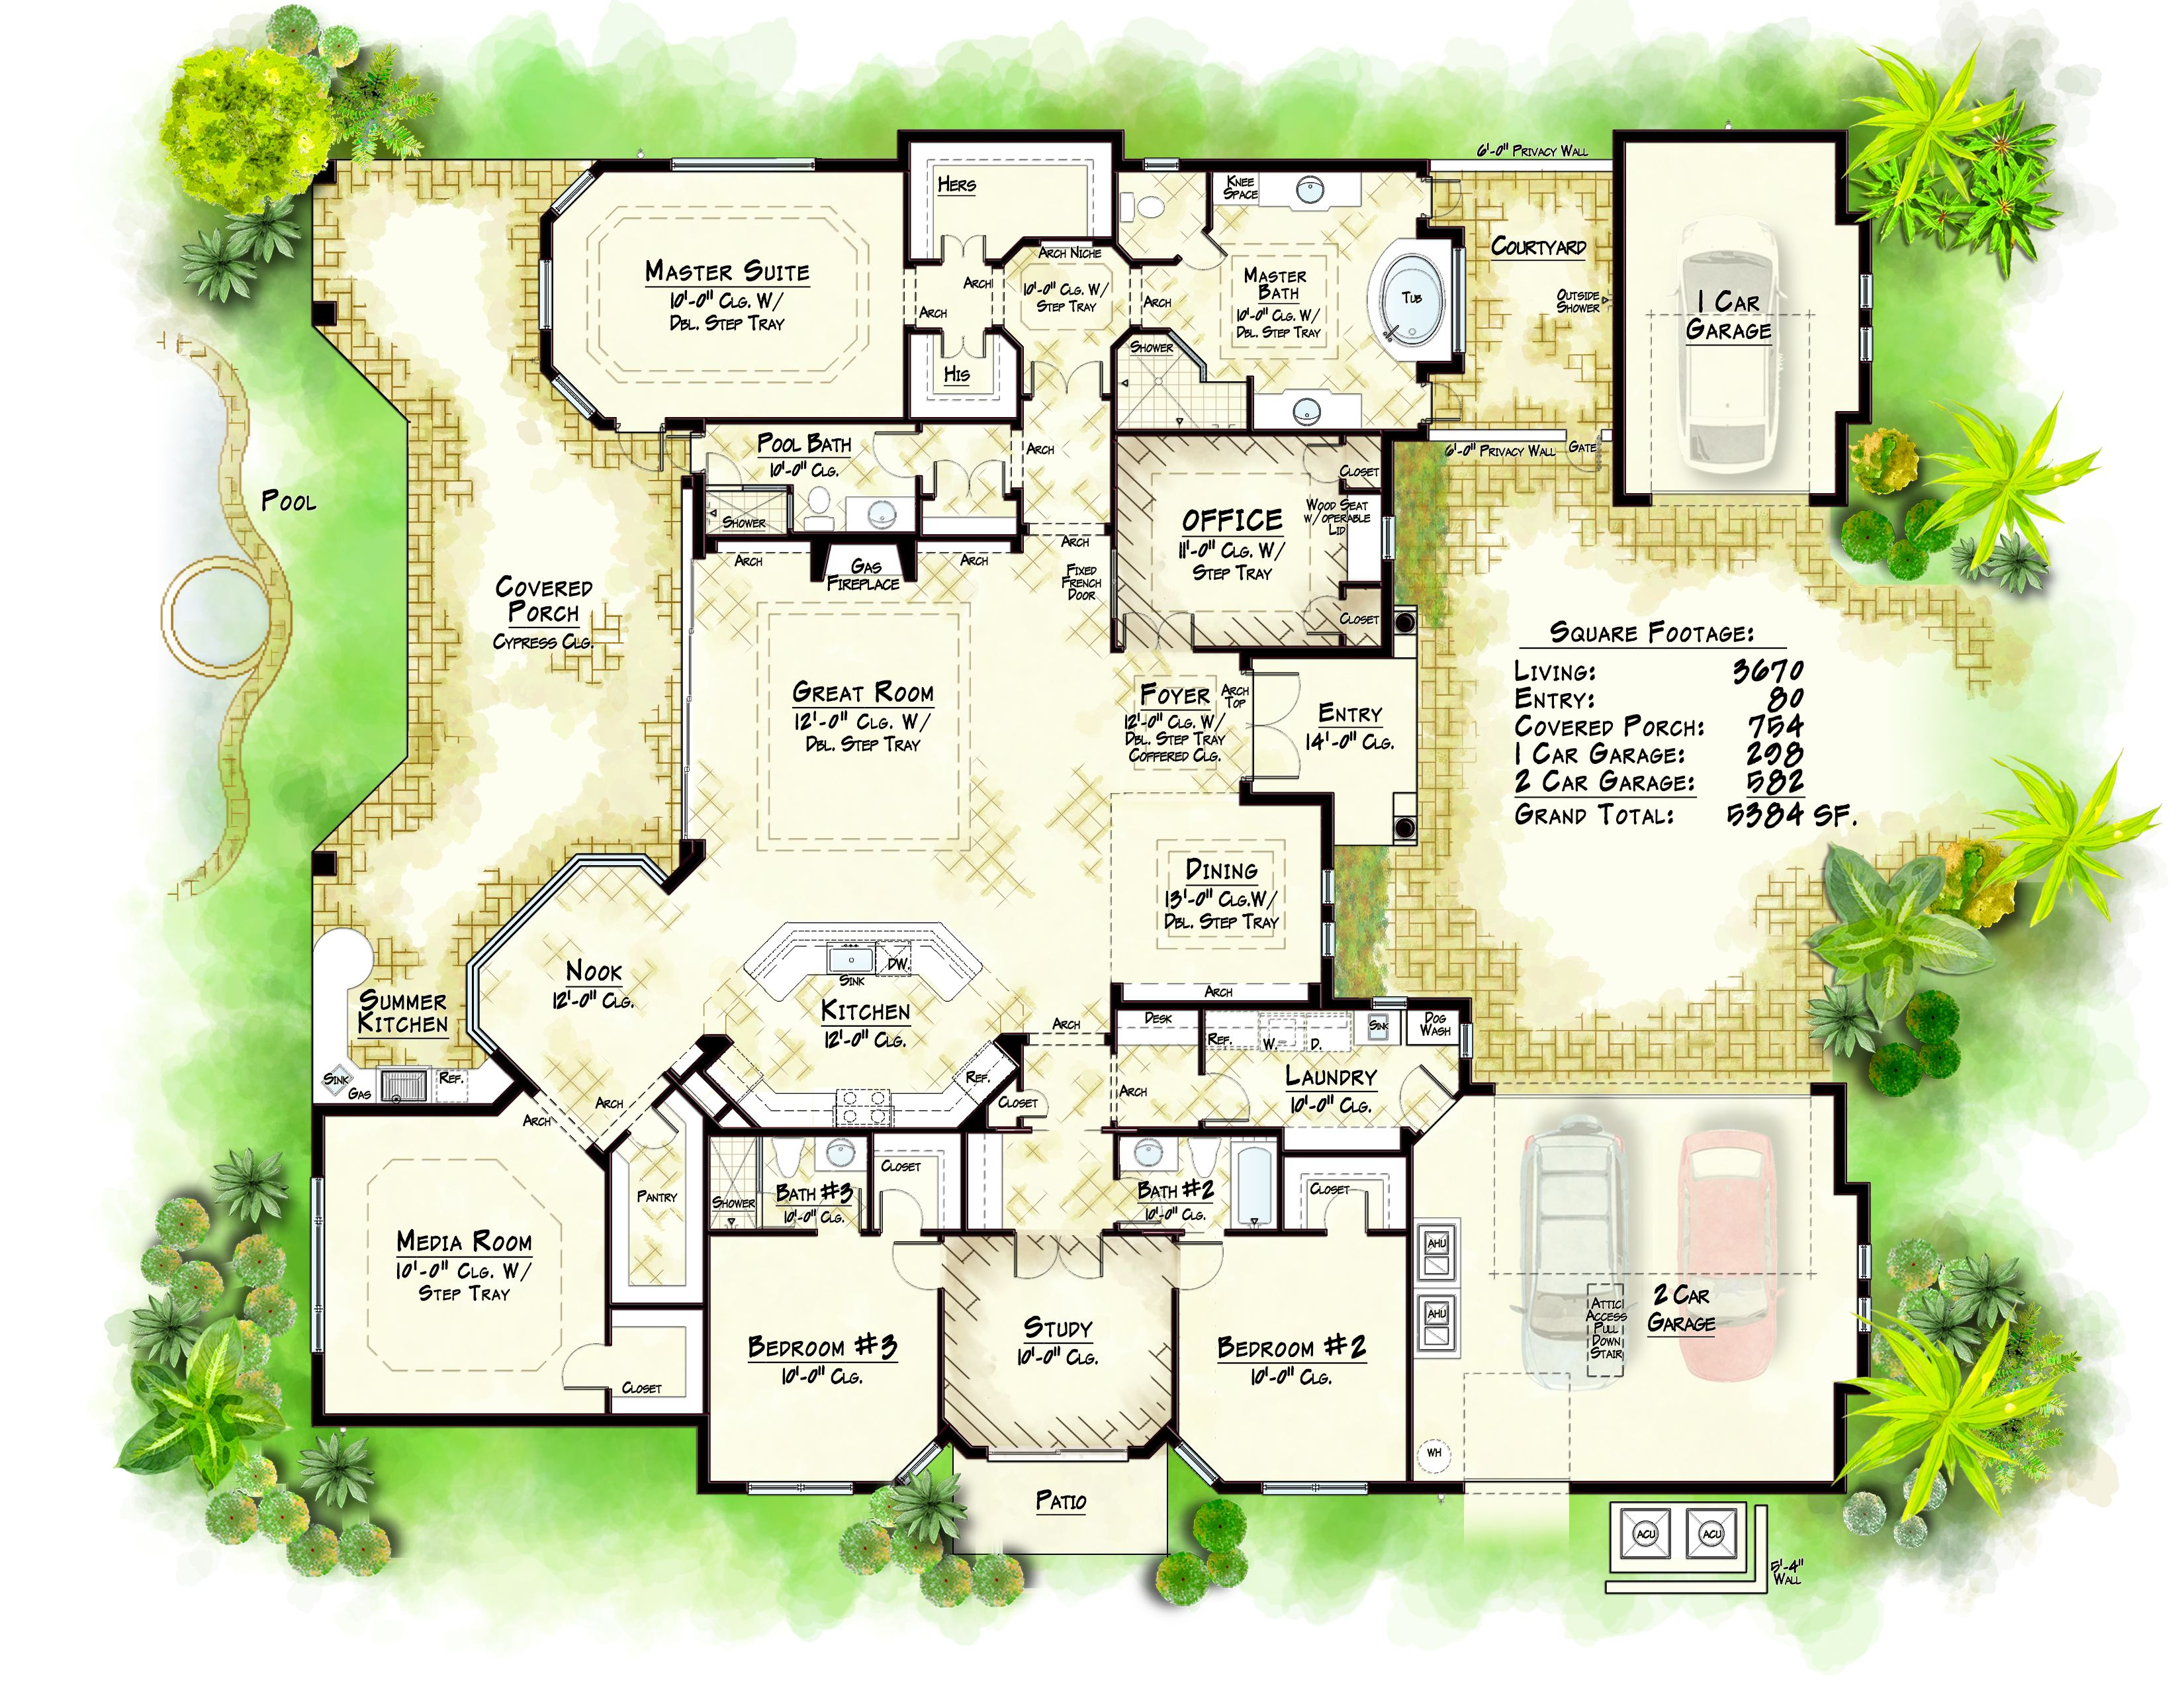 Christopher Burton Homes Www Burtonhomes Com Our Custom Homes Are Built On The Space Coast In Brevar Earthship Home Plans Luxury Floor Plans Earthship Home